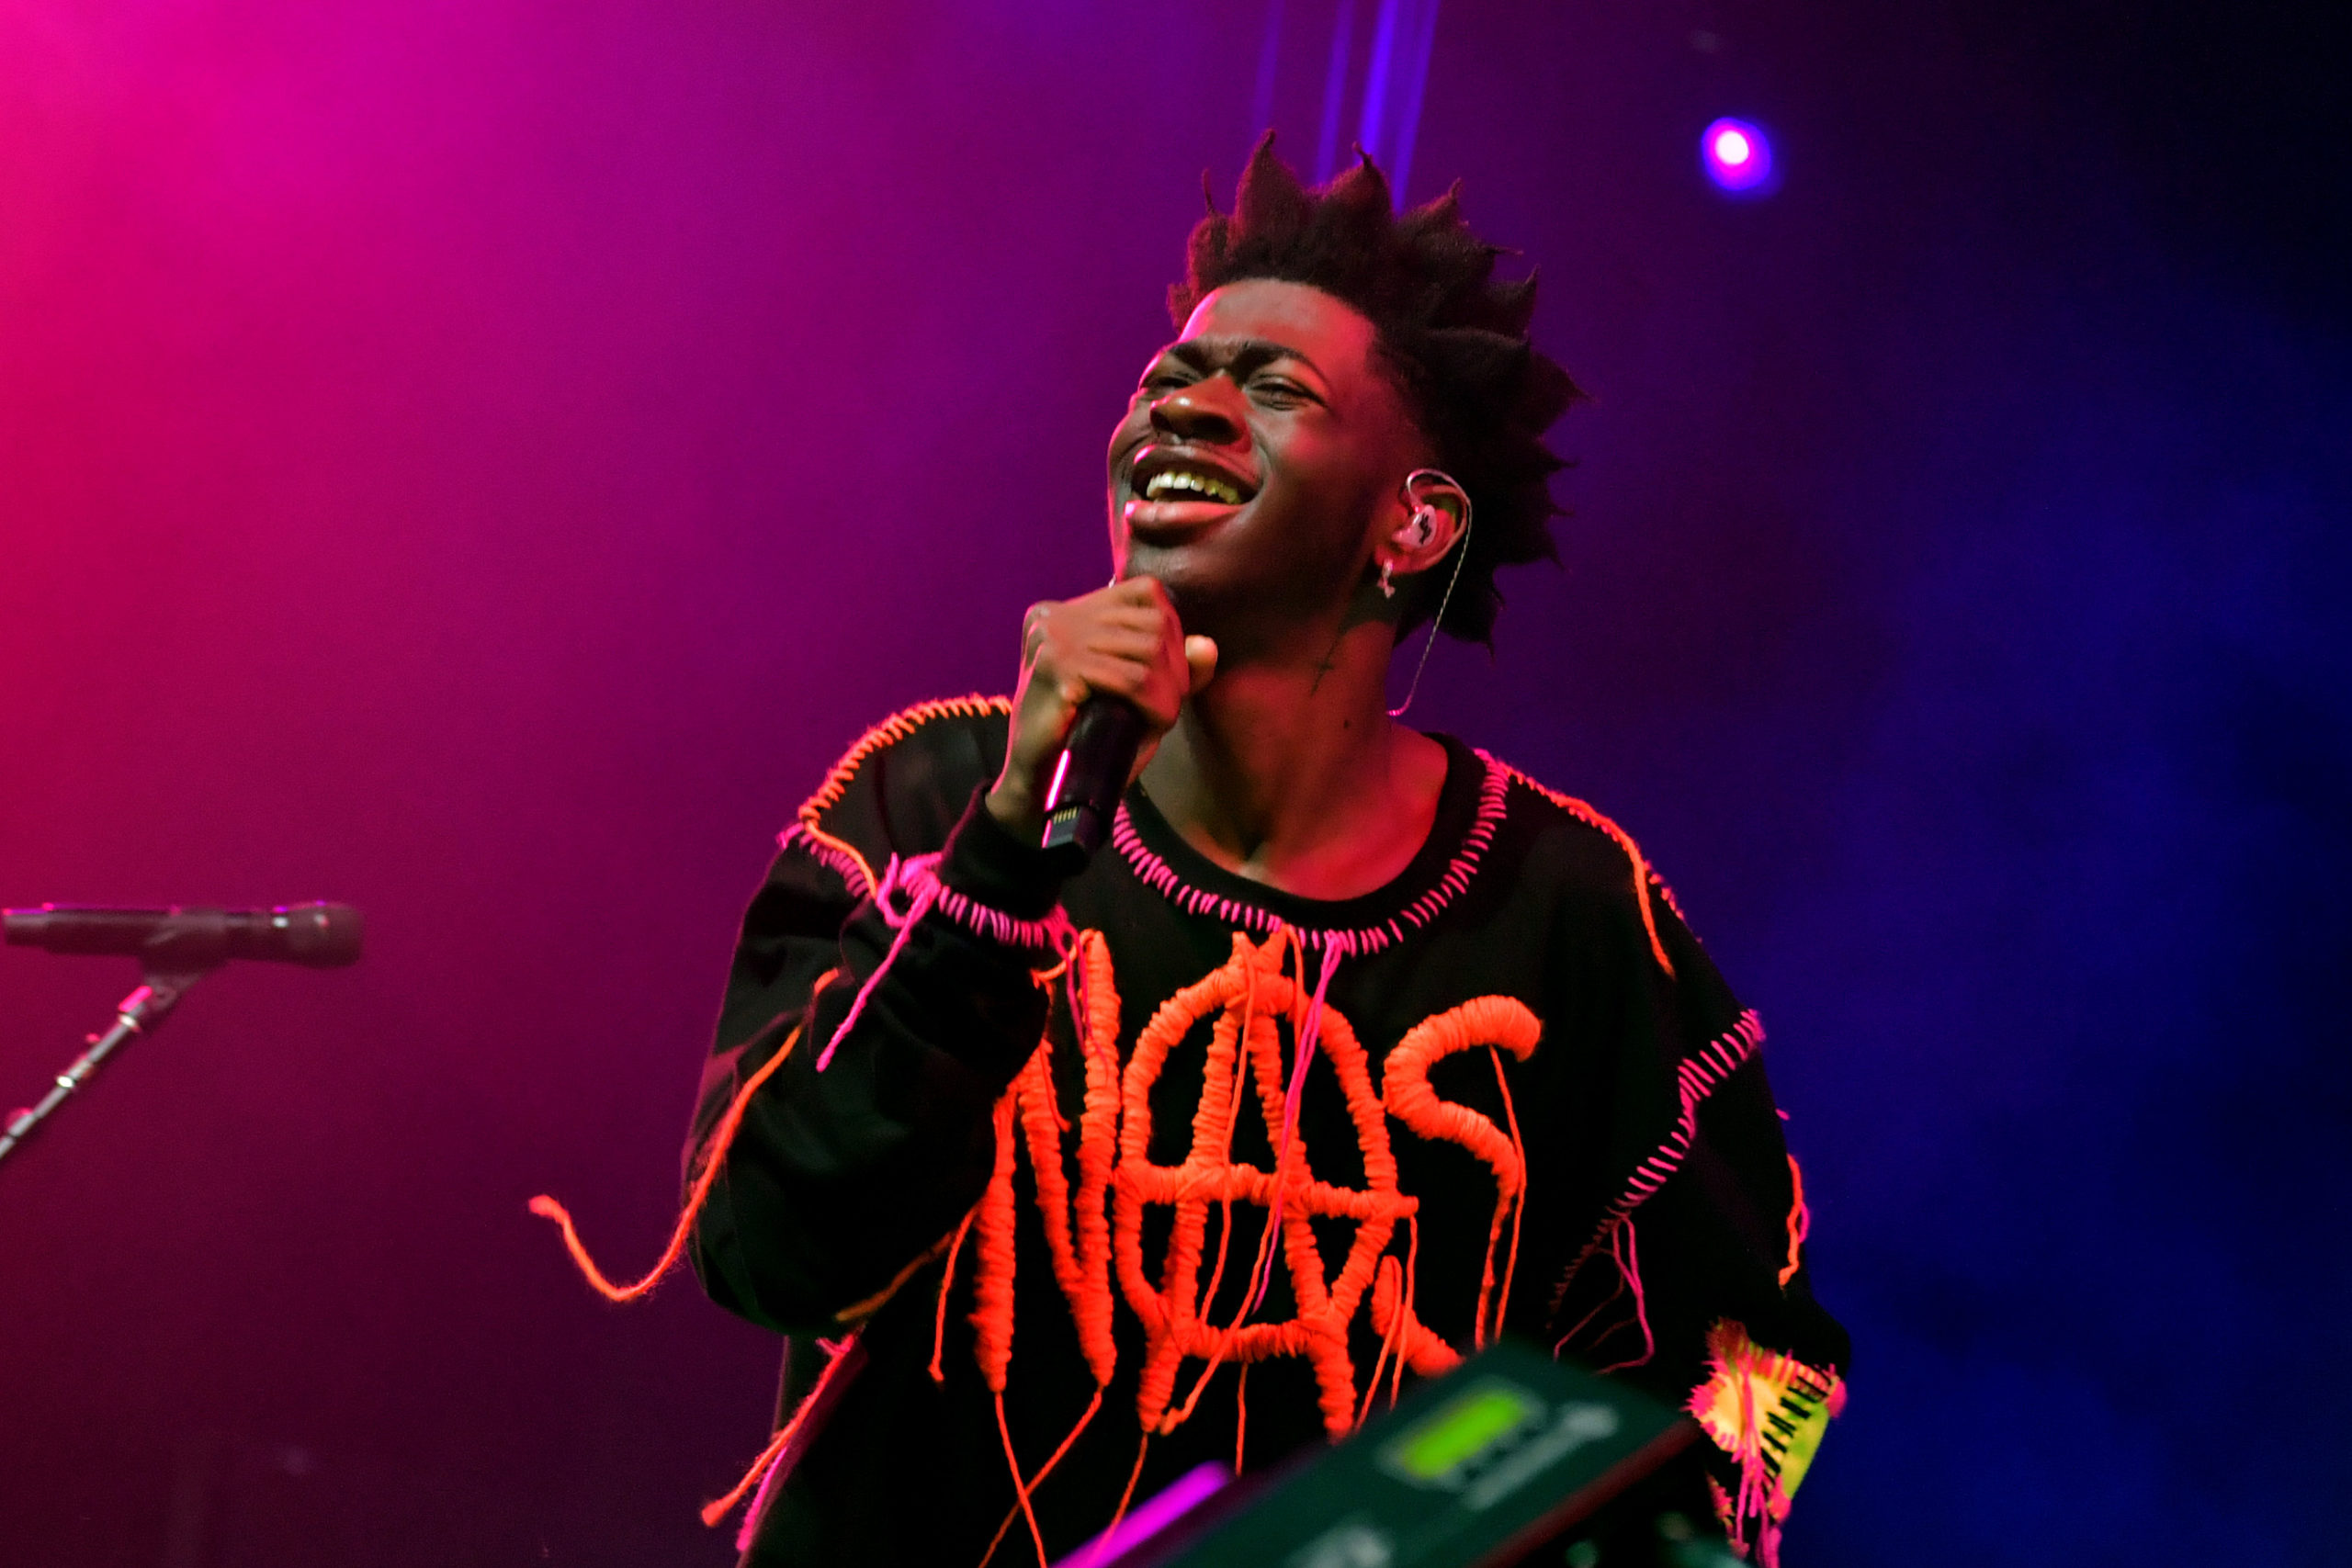 Lil Nas X on stage